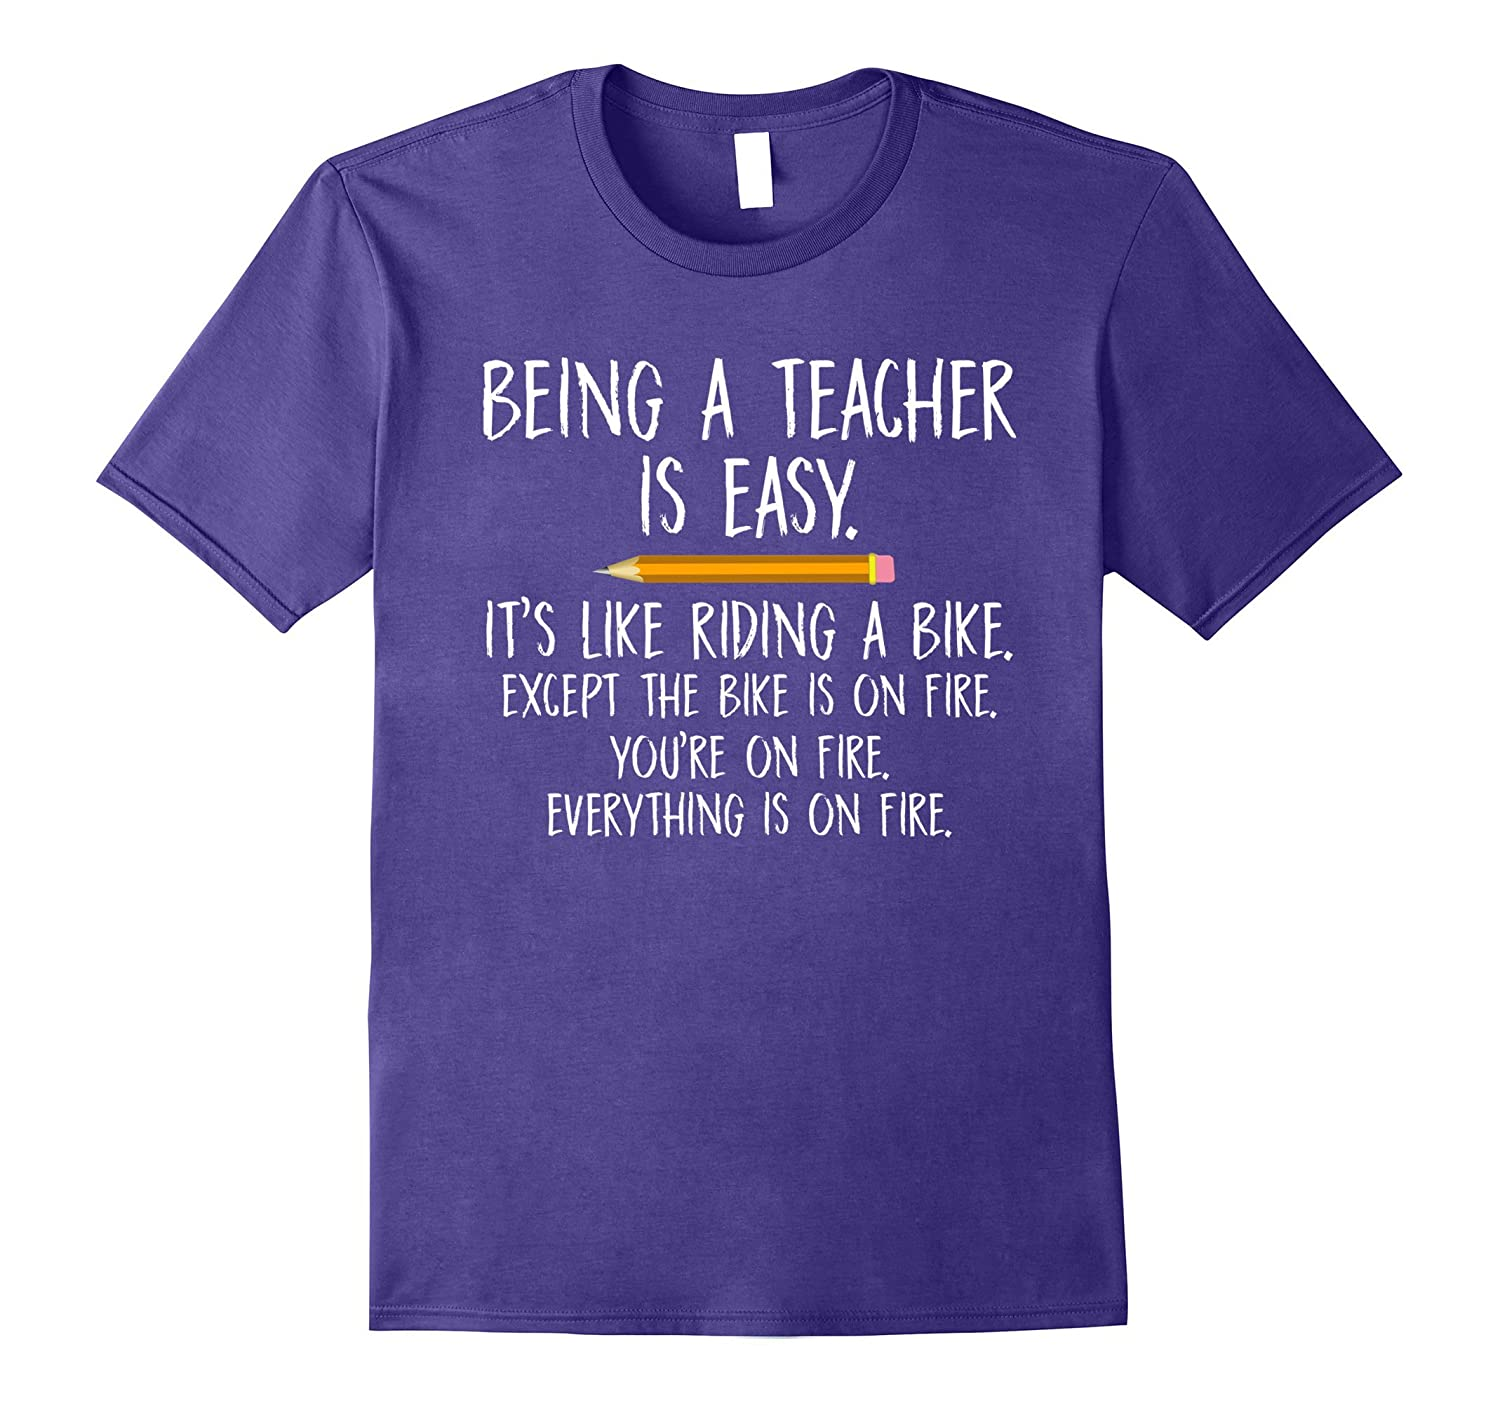 Being a teacher is easy